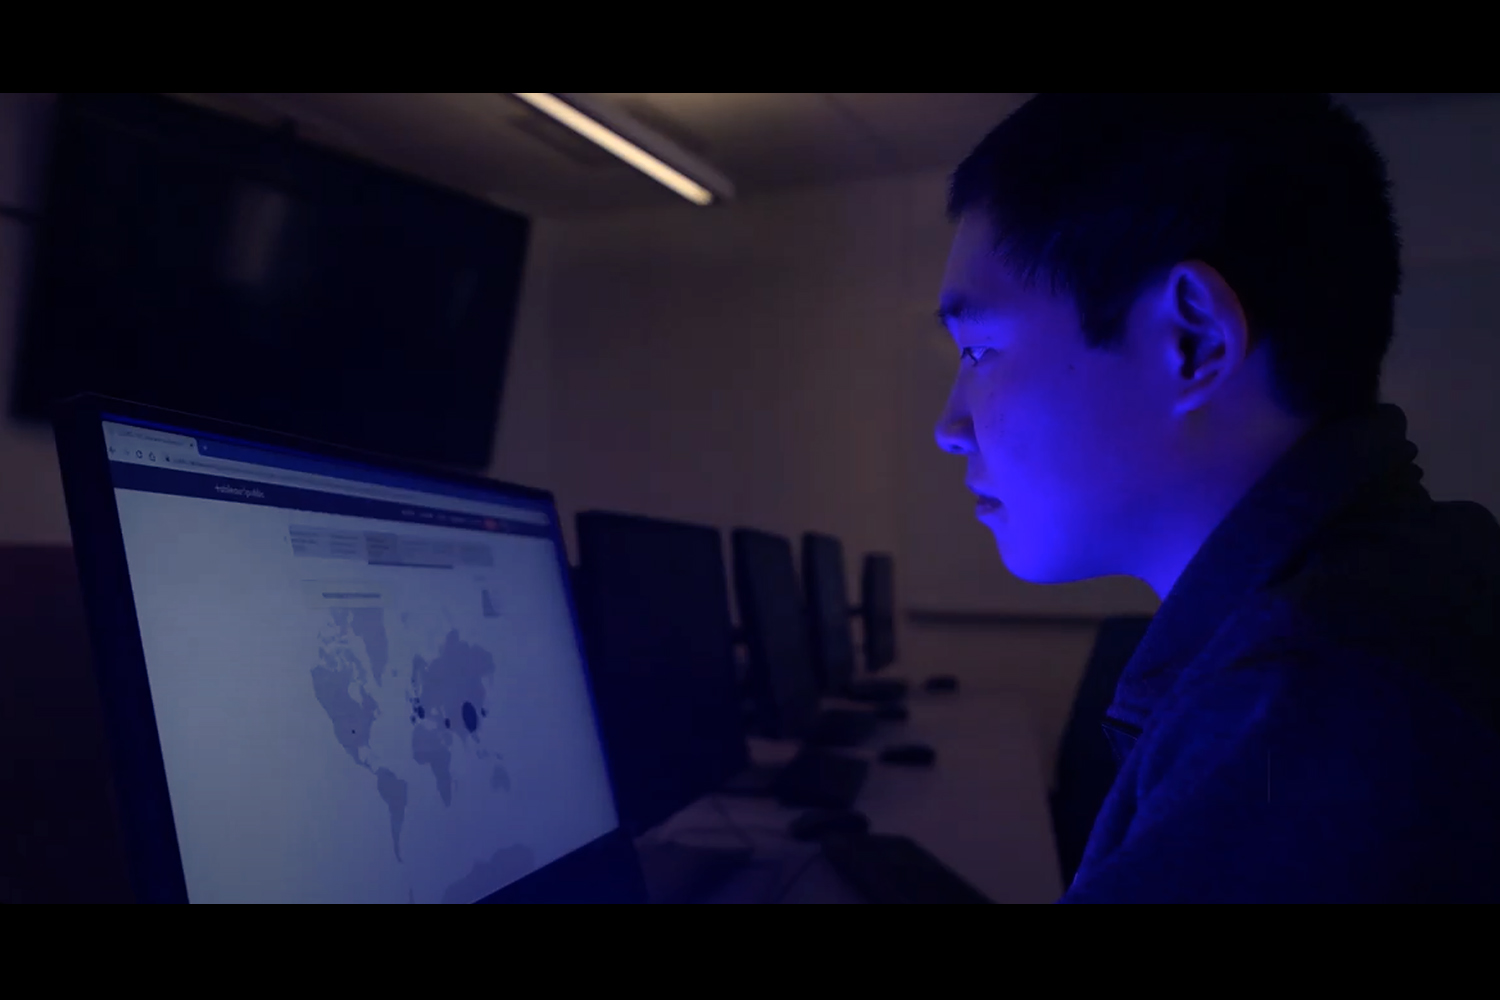 Yuansun (Sonny) Jiang looks at a laptop screen displaying a map of coronavirus cases worldwide in a dark room.